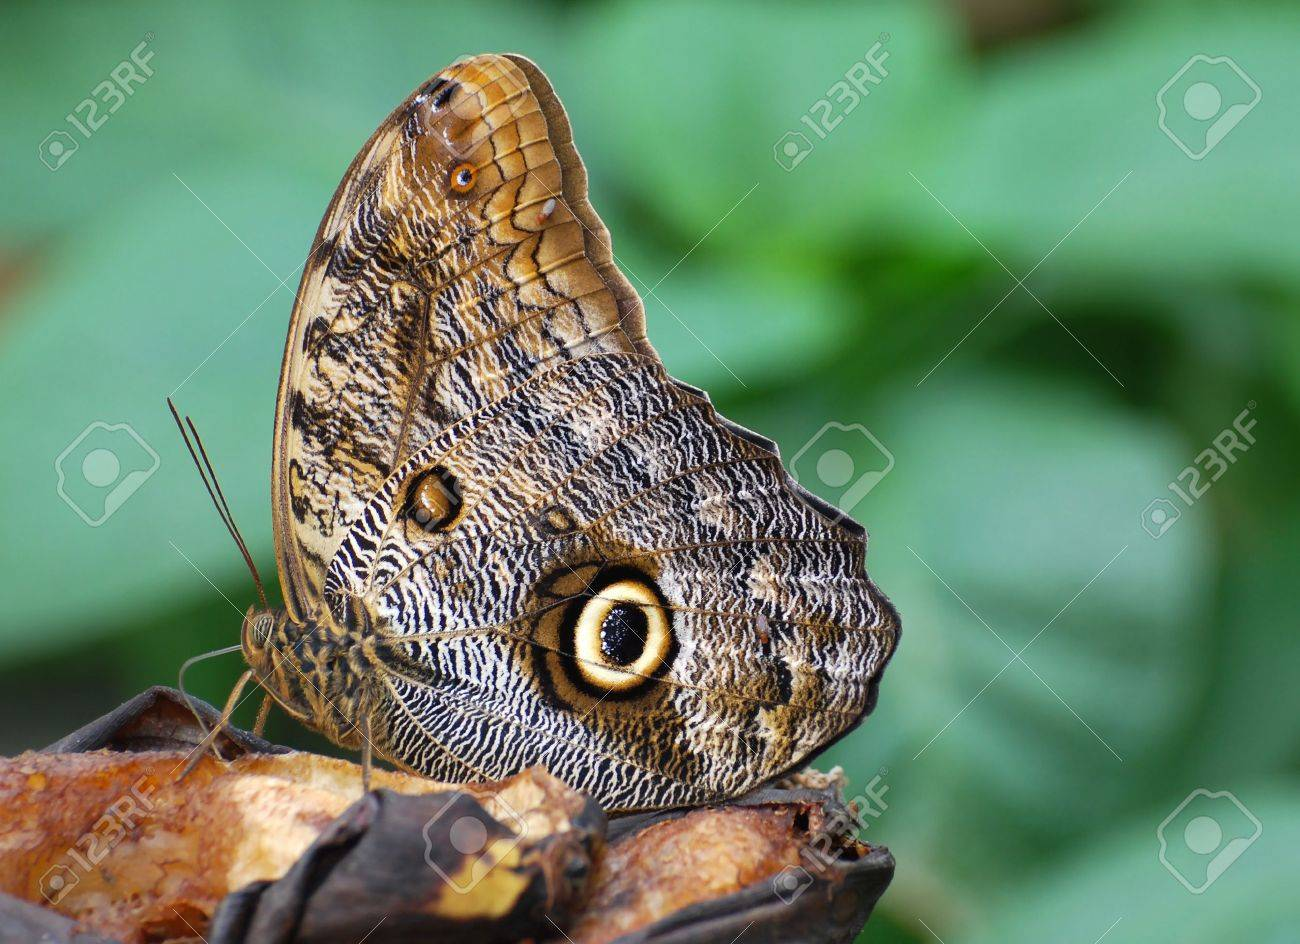 Butterfly feeding on a rotting banana Stock Photo - 2905106